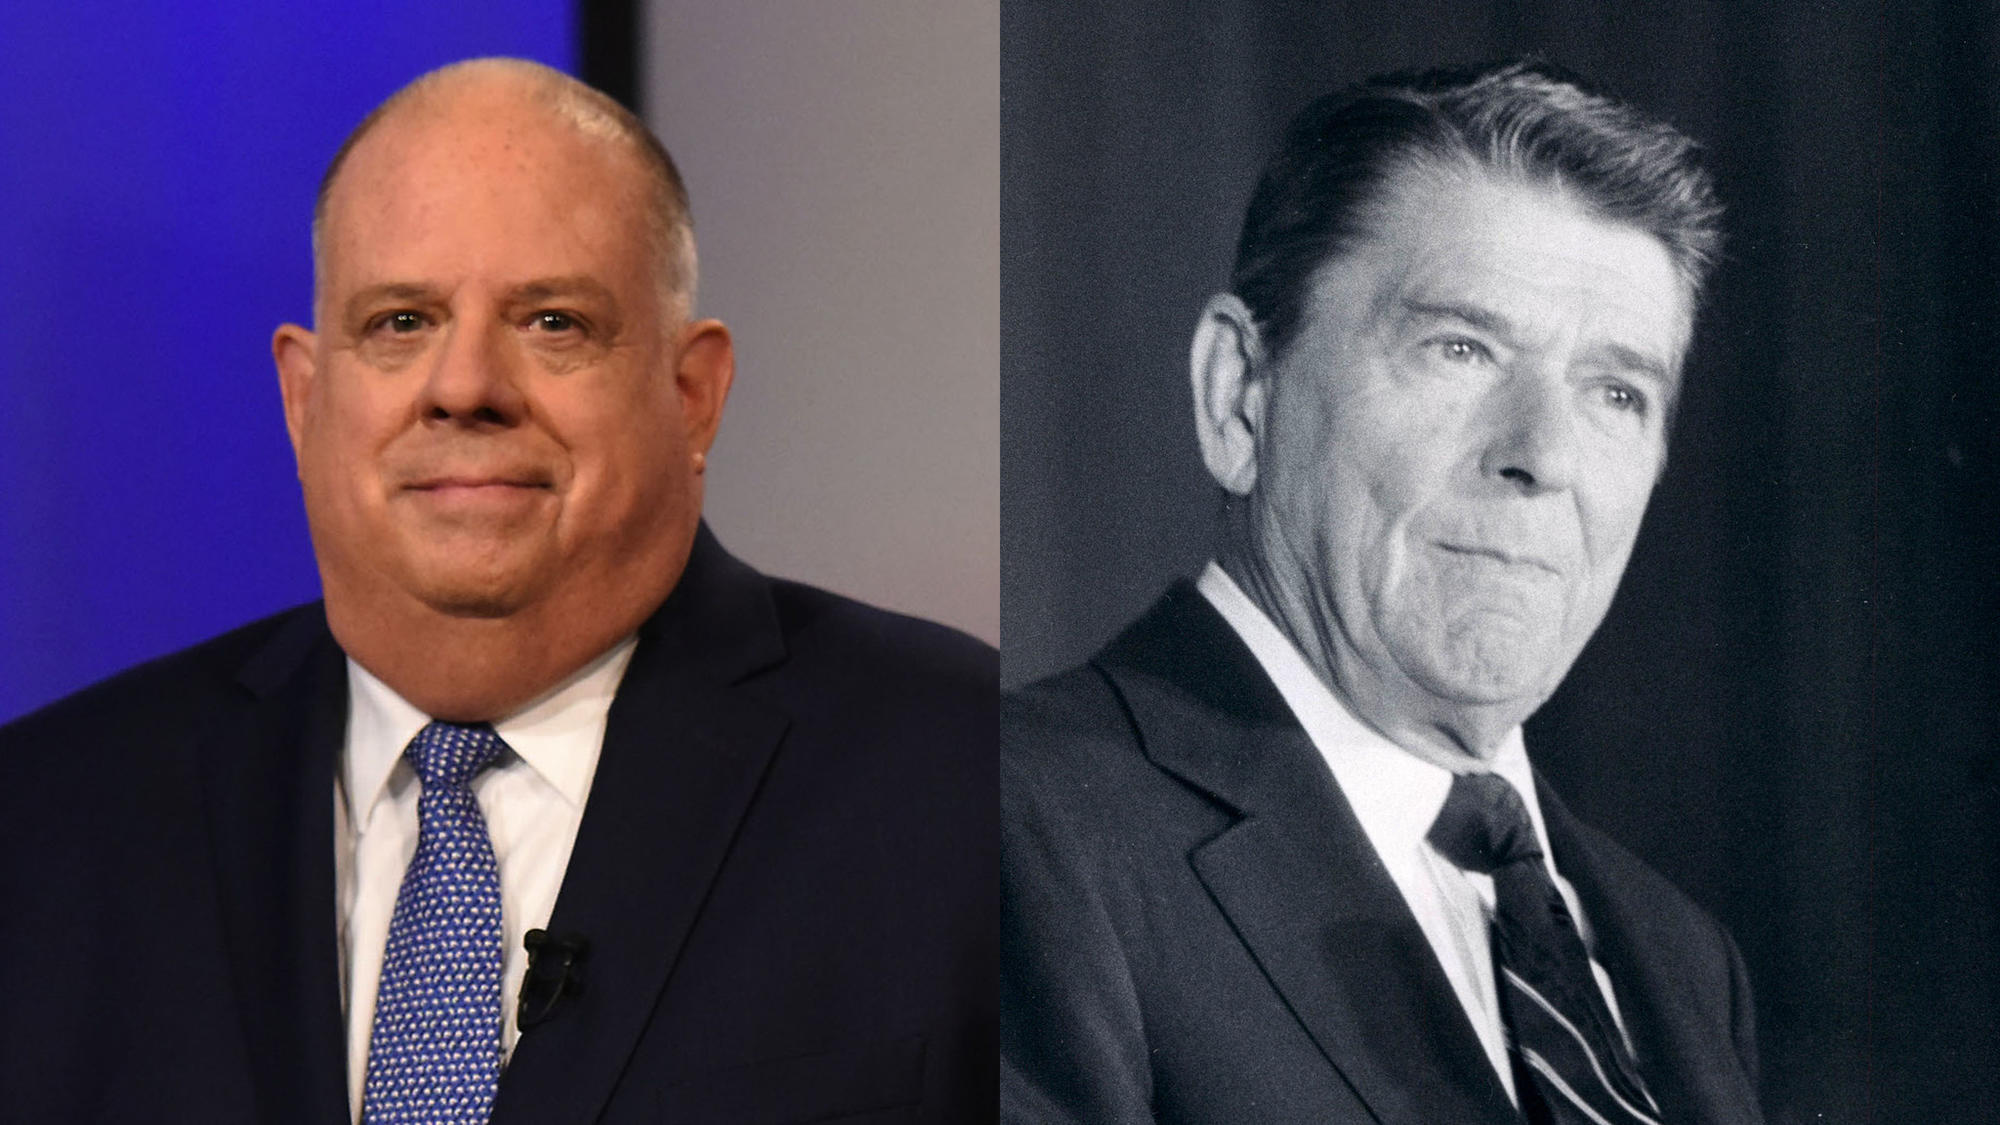 Maryland Democrats: Hogan's claim of being a Reagan Republican signals 'dog whistle' white nationalism